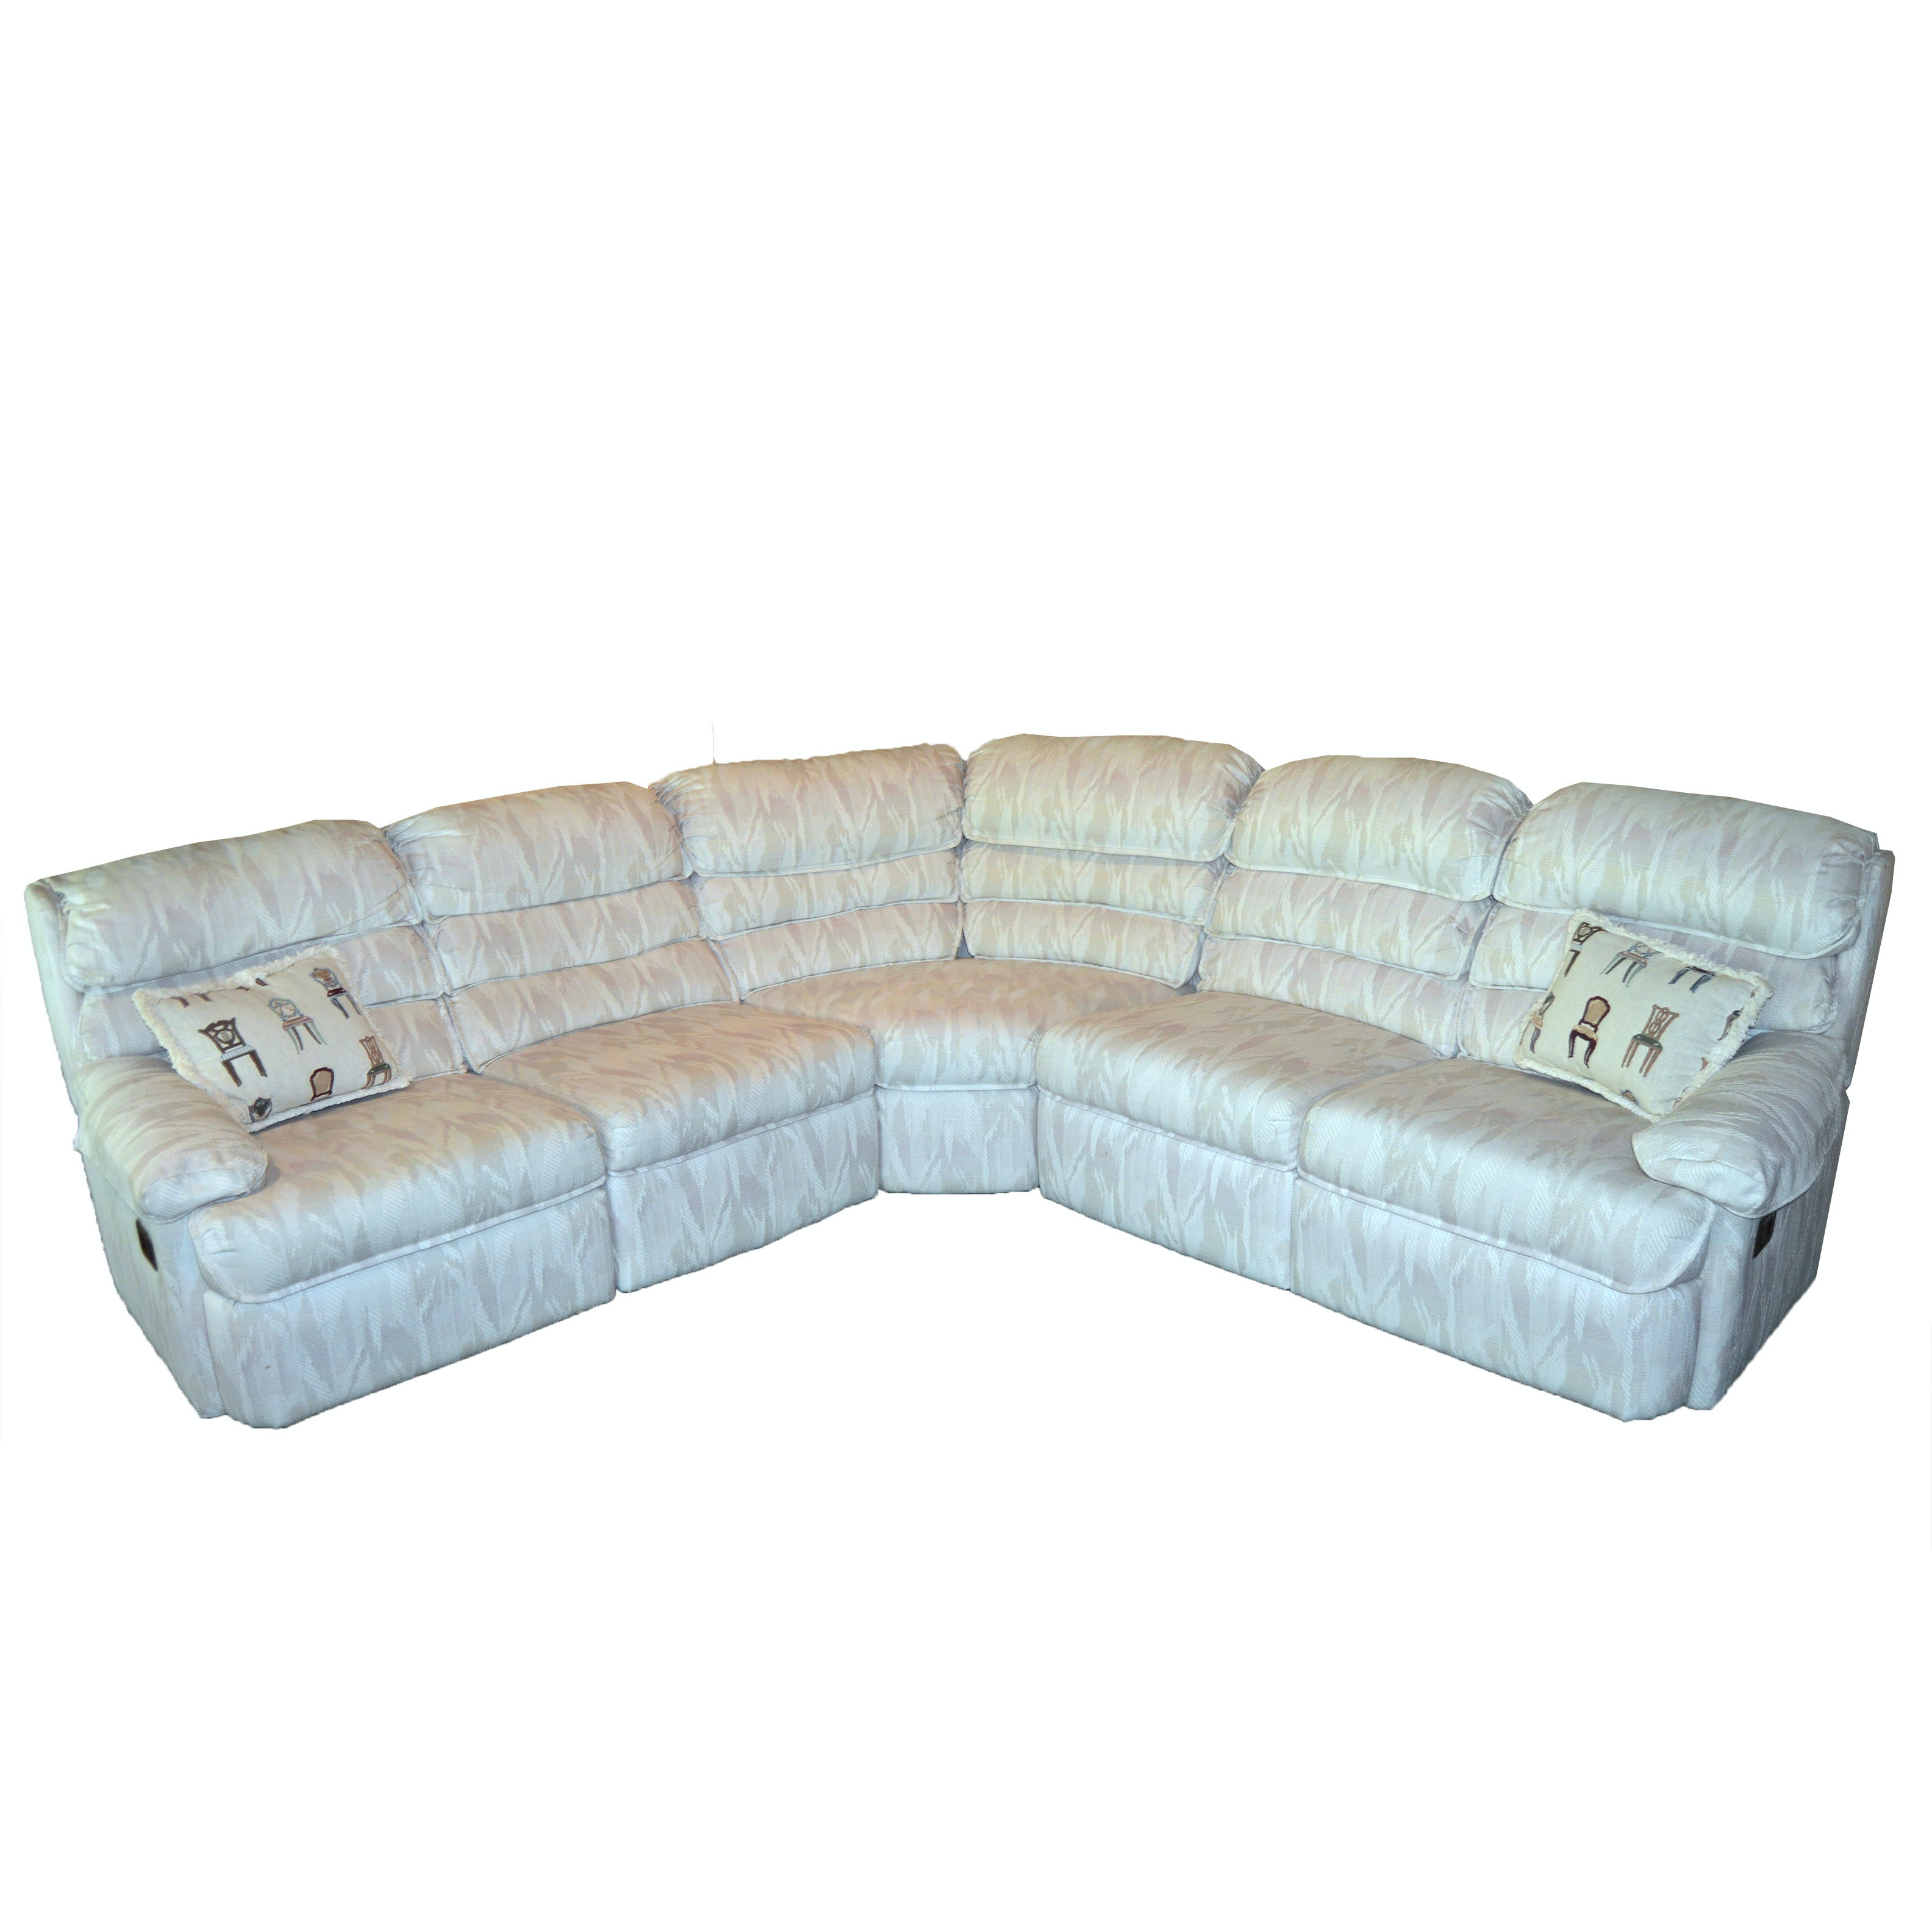 Sectional Sofa with Built-In Recliners